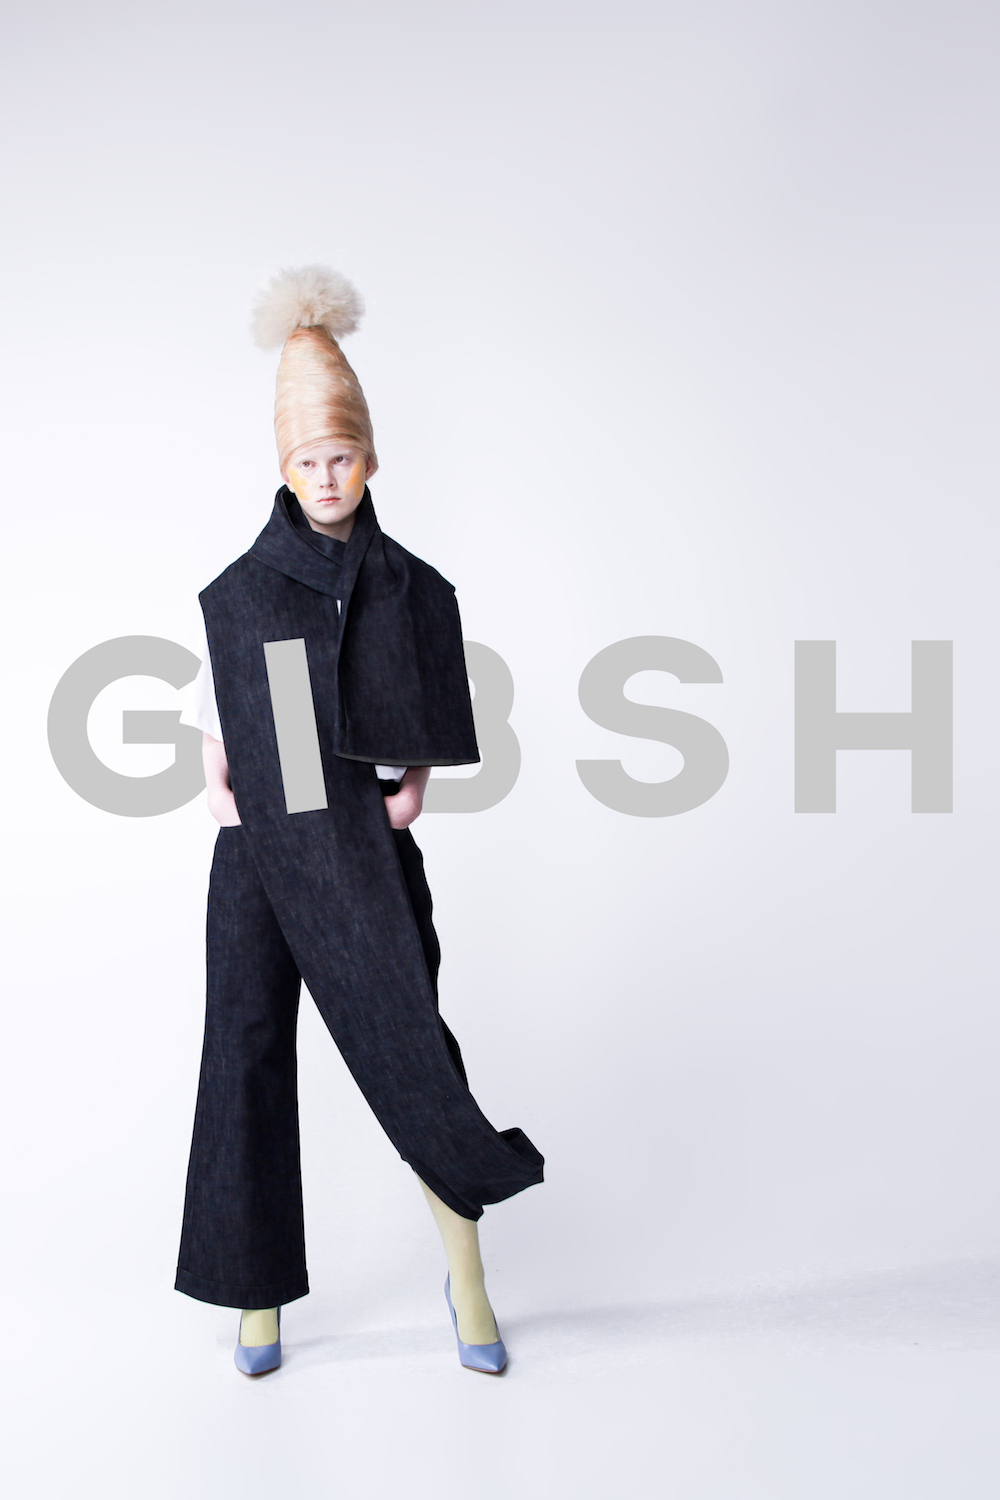 Image: GIBSH F/W18